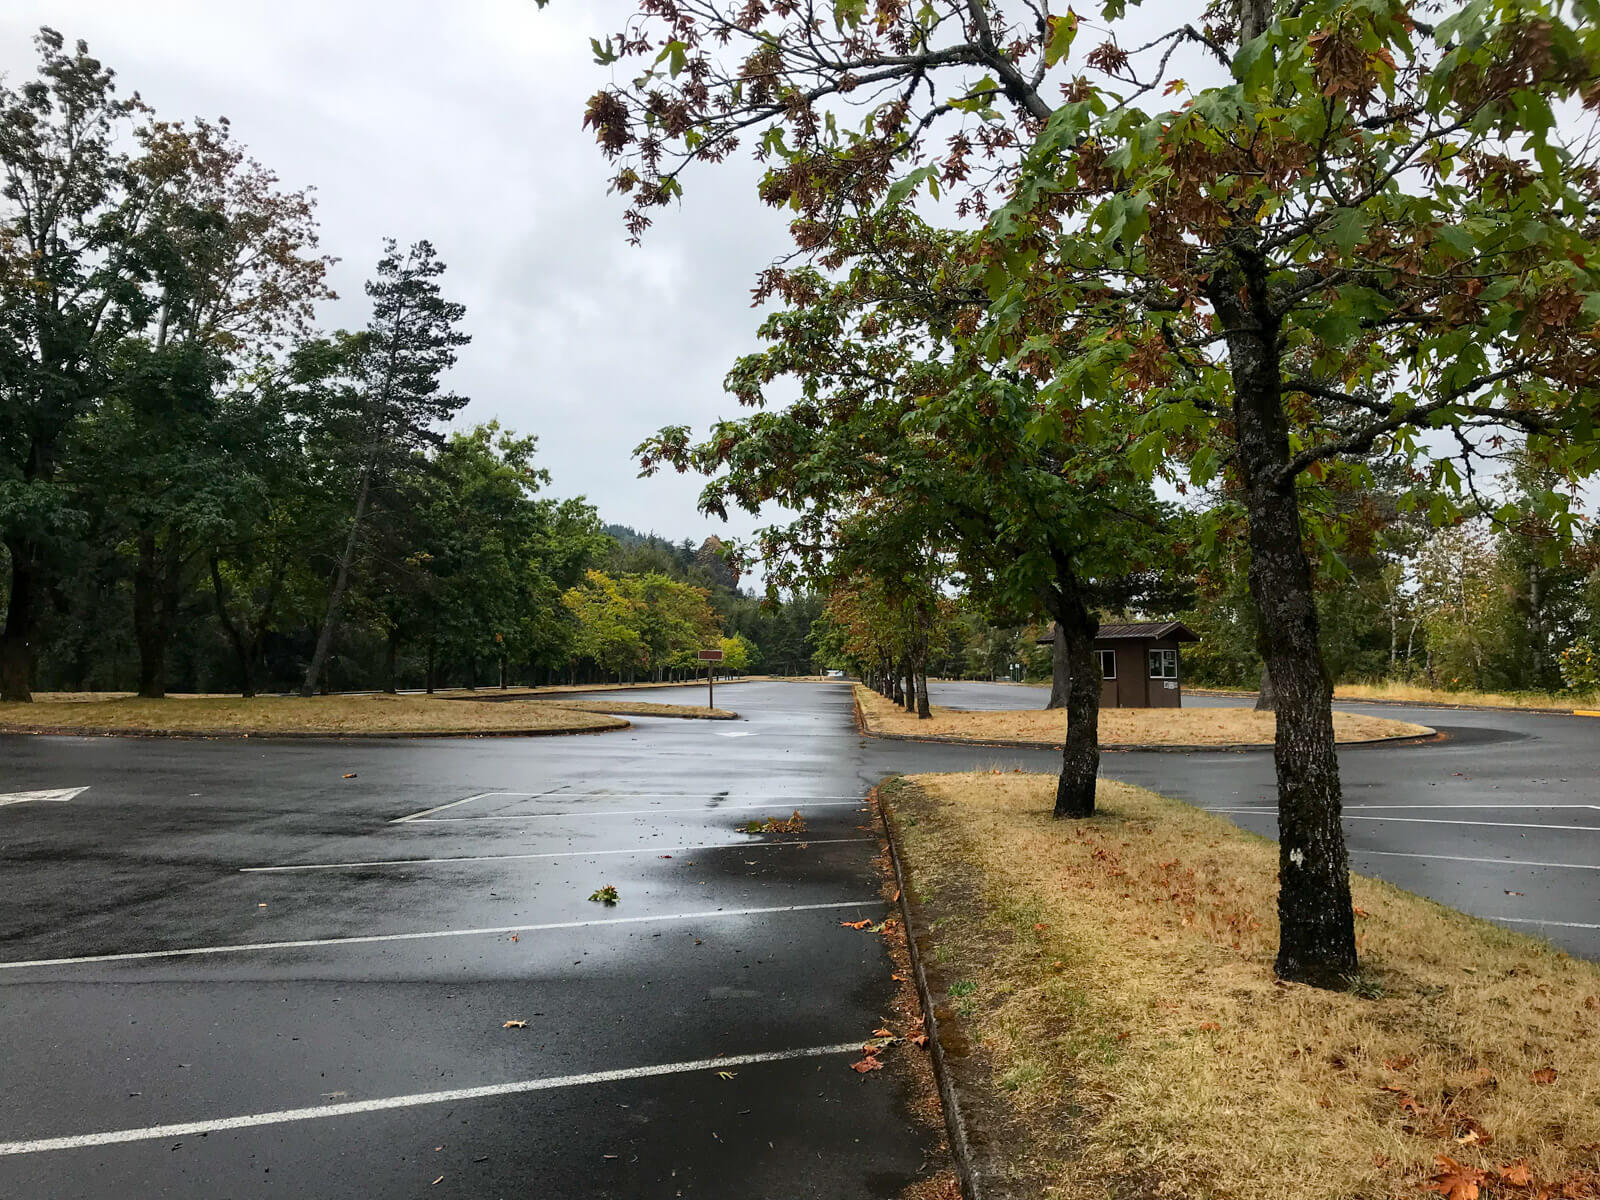 An empty parking lot. The ground is wet, presumably from rain. There are barren looking trees in the median strips